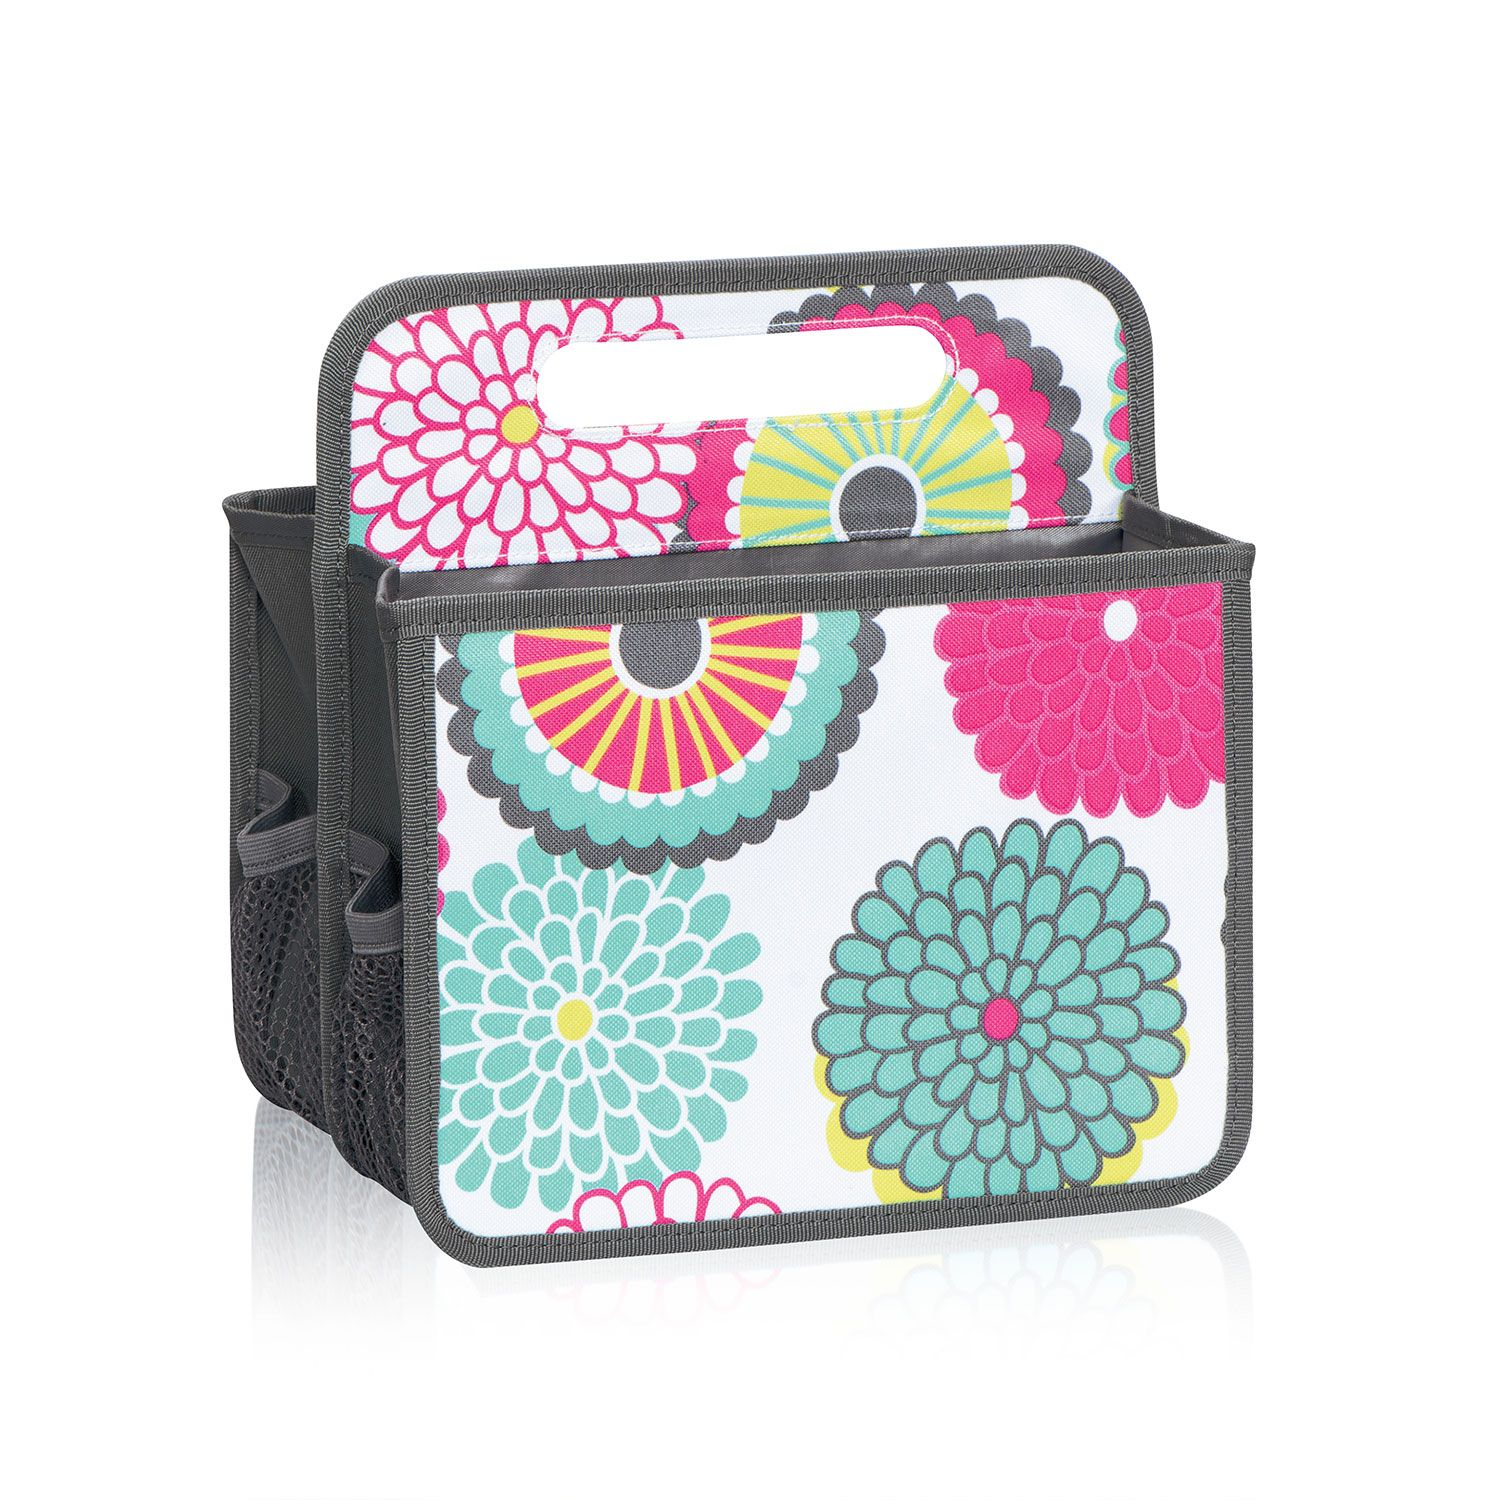 Double Duty Caddy in Bubble Bloom for $25 - This handy caddy works ...